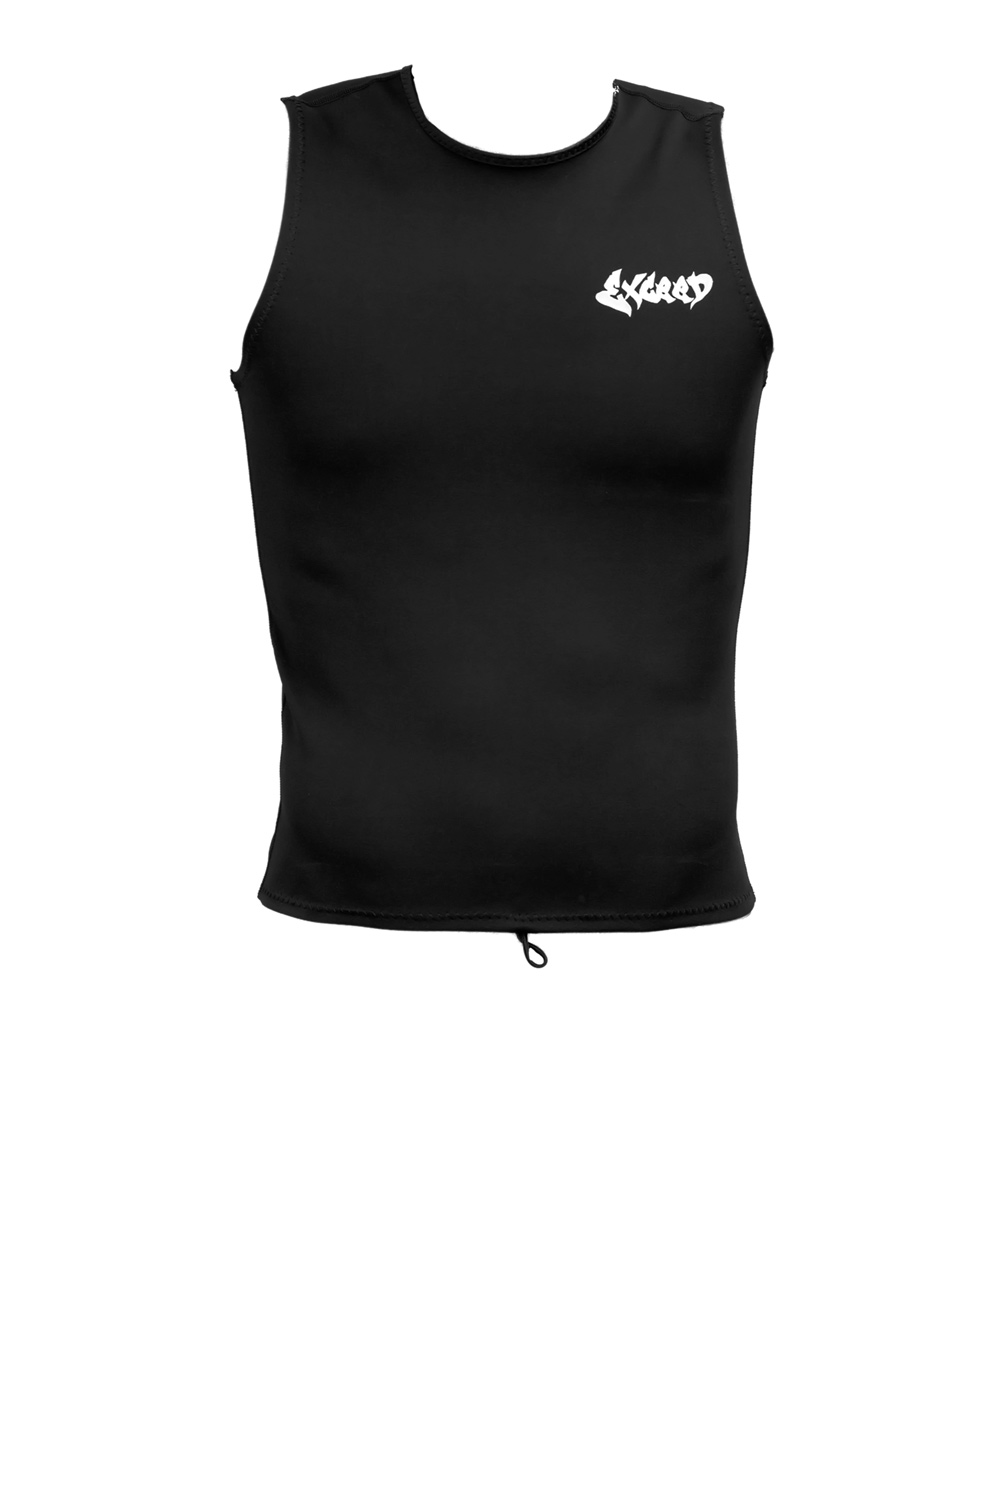 Exceed Epilogue Mens Sleeveless 0.5mm Vest